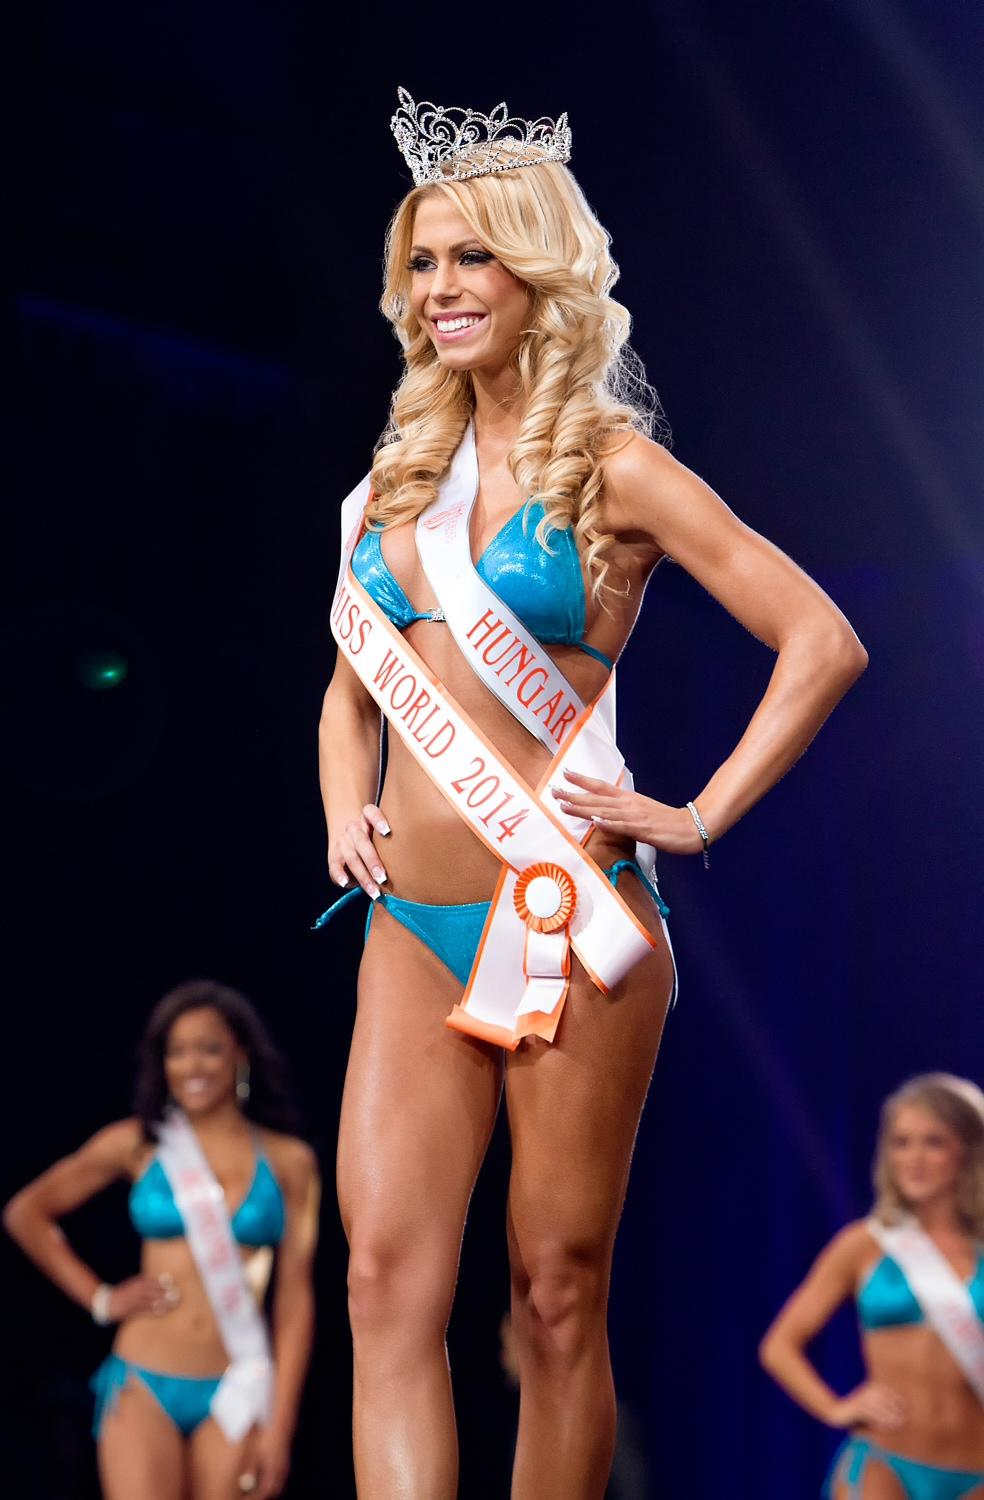 Hungarian Nikolett Szollath Named Miss Hooters World In Annual Hooters International Swimsuit Pageant